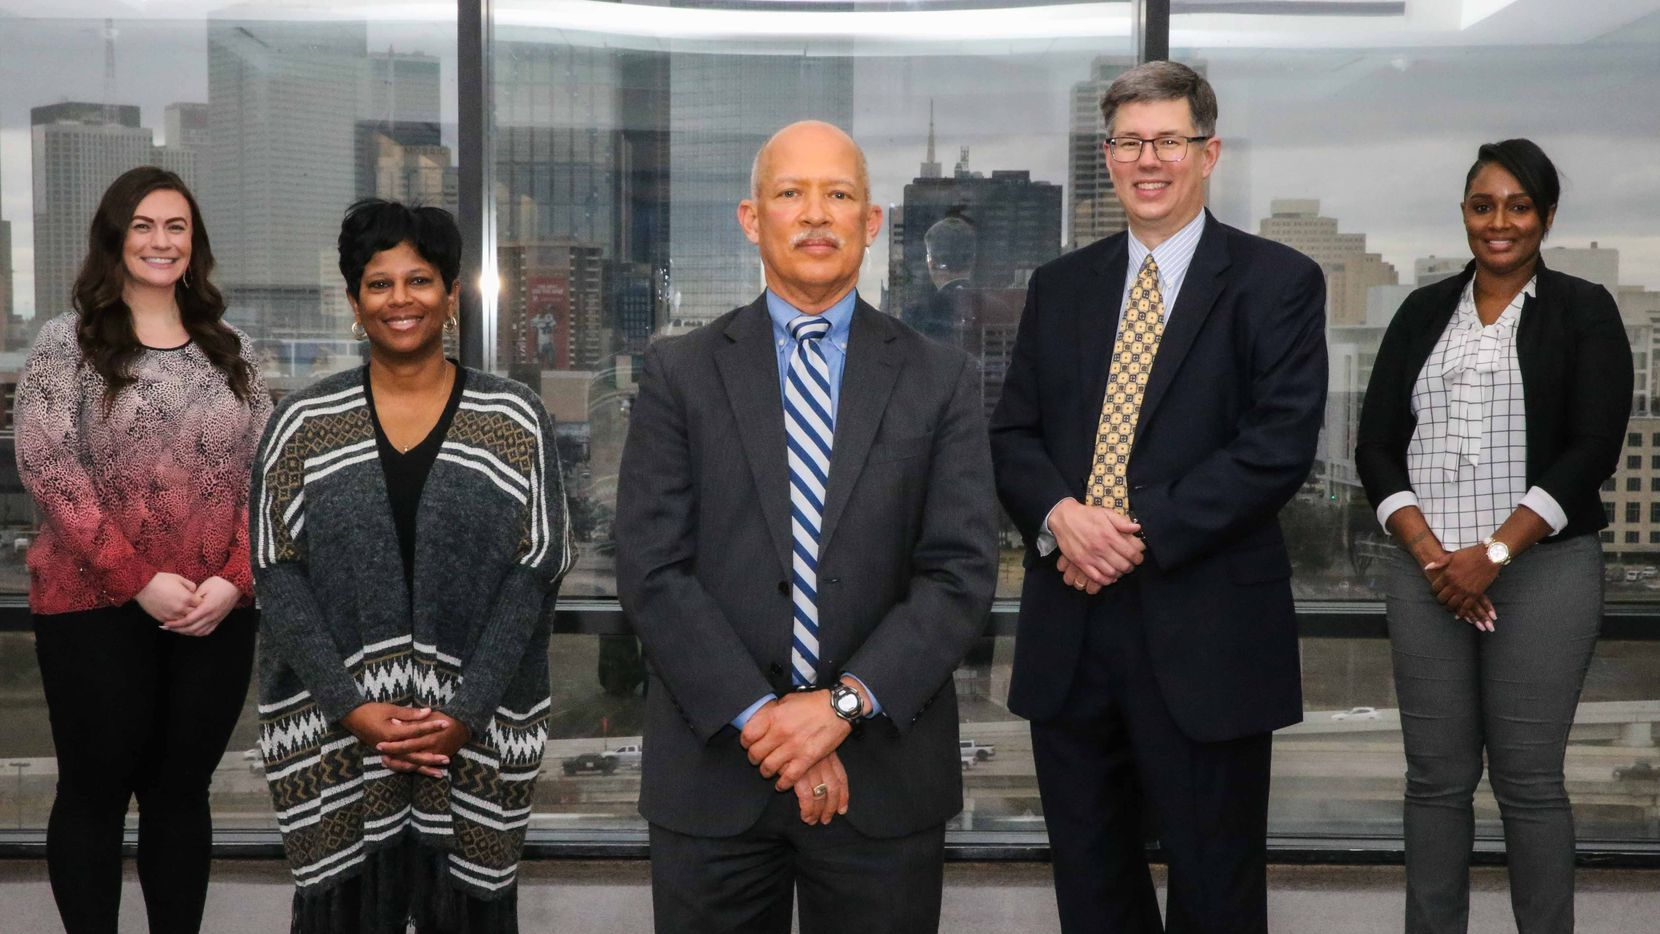 Dallas County District Attorney John Creuzot (center) worked to get care coordinators Carly Turner (from left) and Twana Northcutt, both with the North Texas Behavioral Health Authority, and LaVonda Herring (far right) of Metrocare Services to assist Lee Pierson (right of Creuzot) and his mental health division team. Both prosecutors and defense attorneys are kept up to date on all the care coordinators' clients.